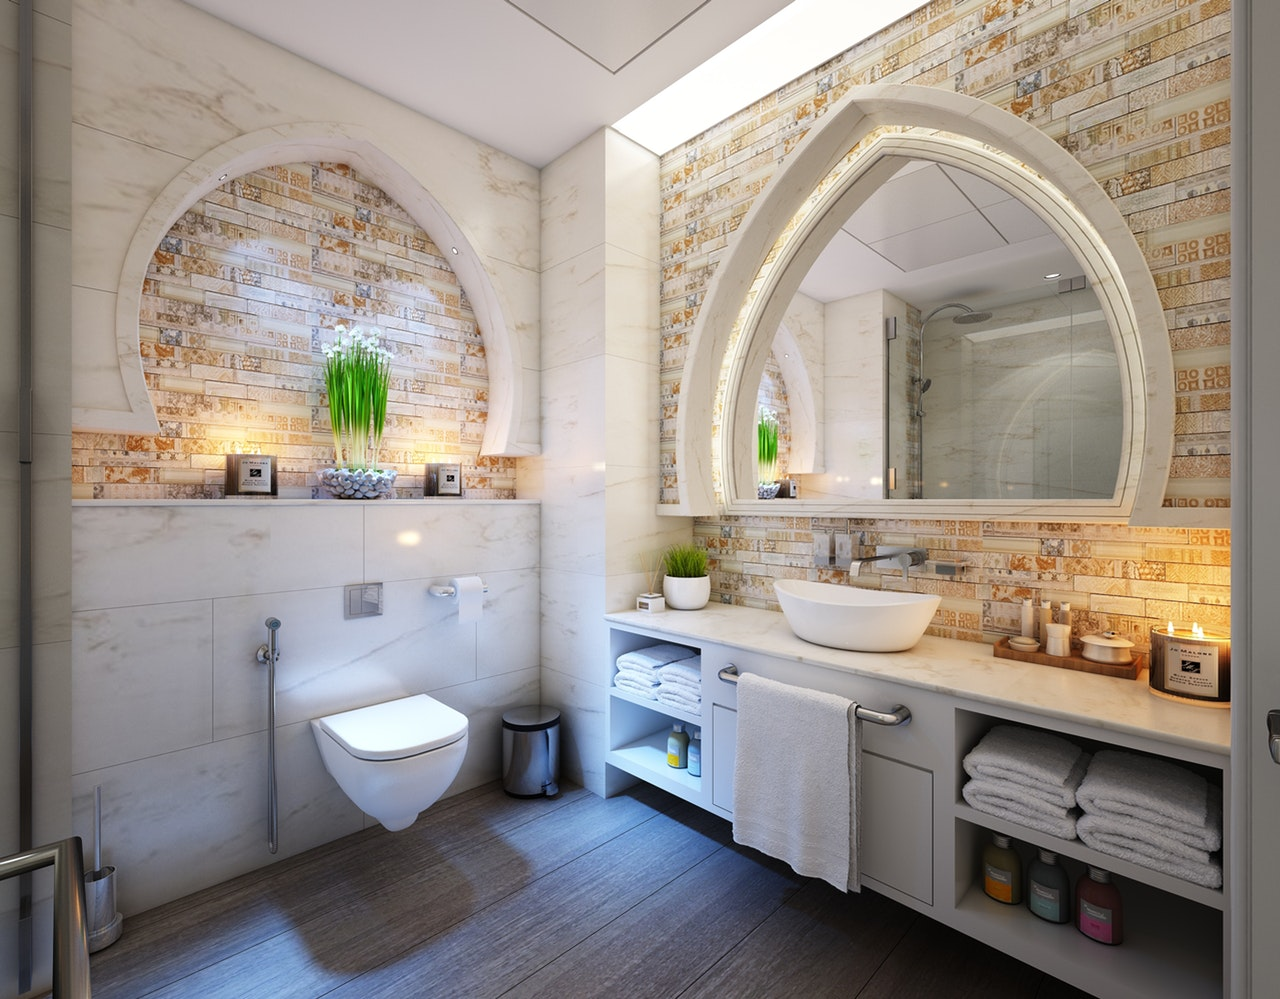 Making a bathroom more family friendly